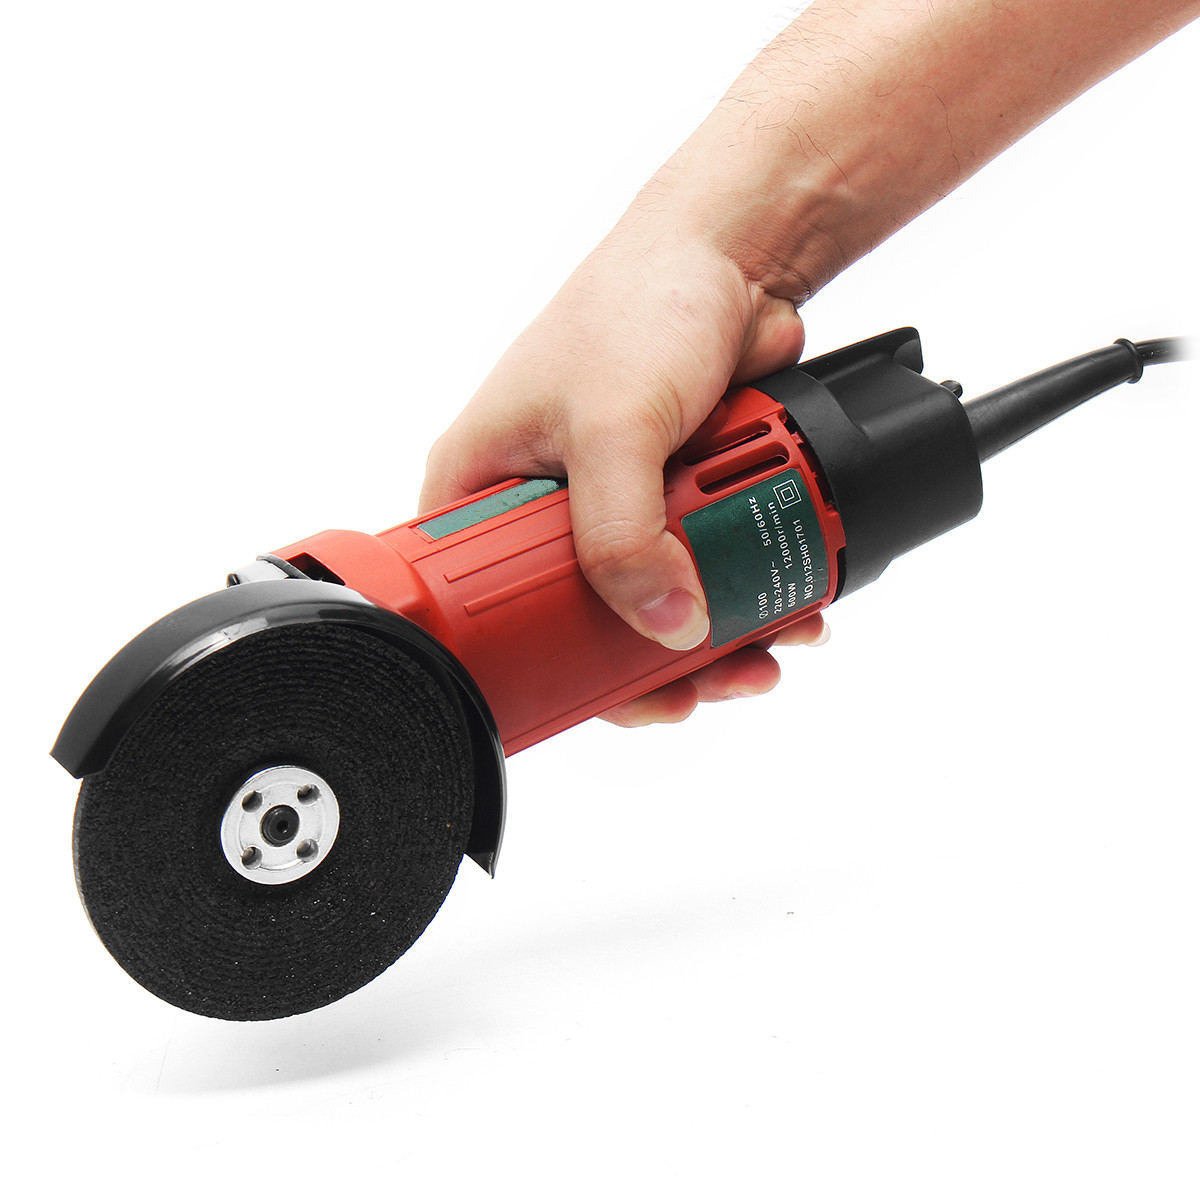 600W AC220-240V Household Angle Grinder Tool Multifunctional Electric Angle Grinder Polishing Machine Metal Grinding Cutter Tool vibration type pneumatic sanding machine rectangle grinding machine sand vibration machine polishing machine 70x100mm